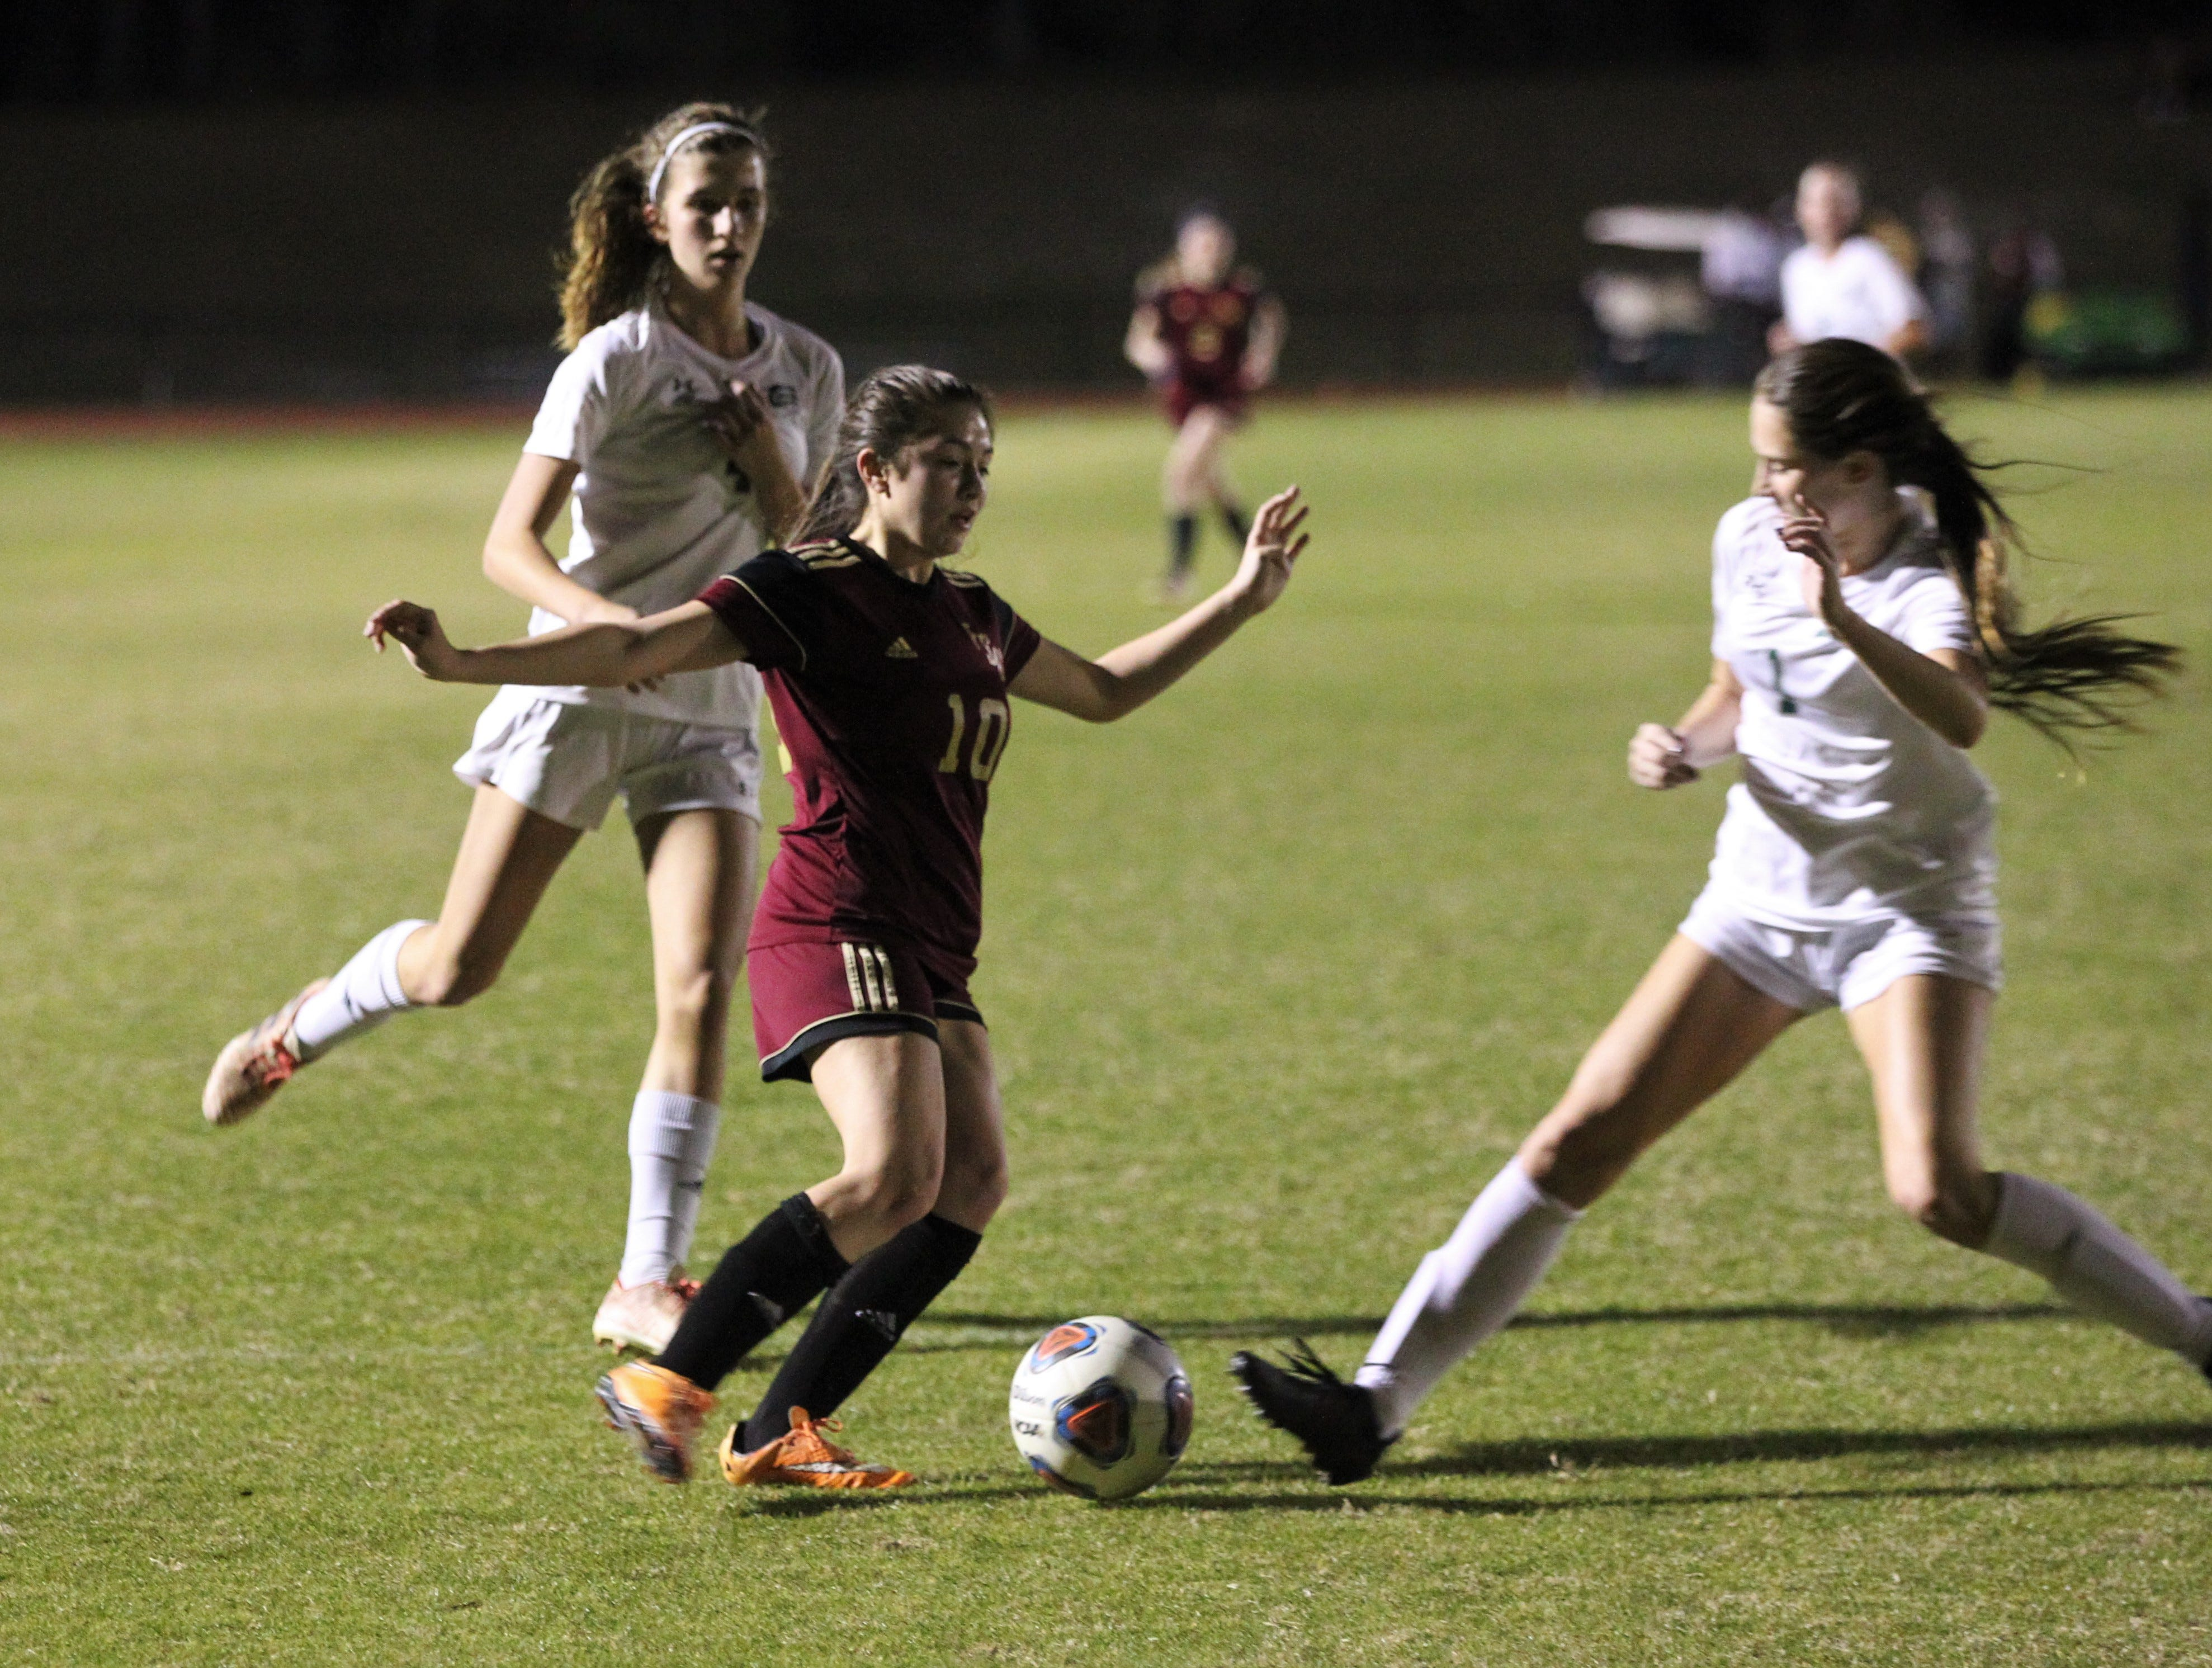 Florida High's Adriana Limburg tries to dribble past a defender as South Walton edged the Seminoles 5-4 in a penalty-kick shootout during a Region 1-2A semifinal on Feb. 8, 2019.